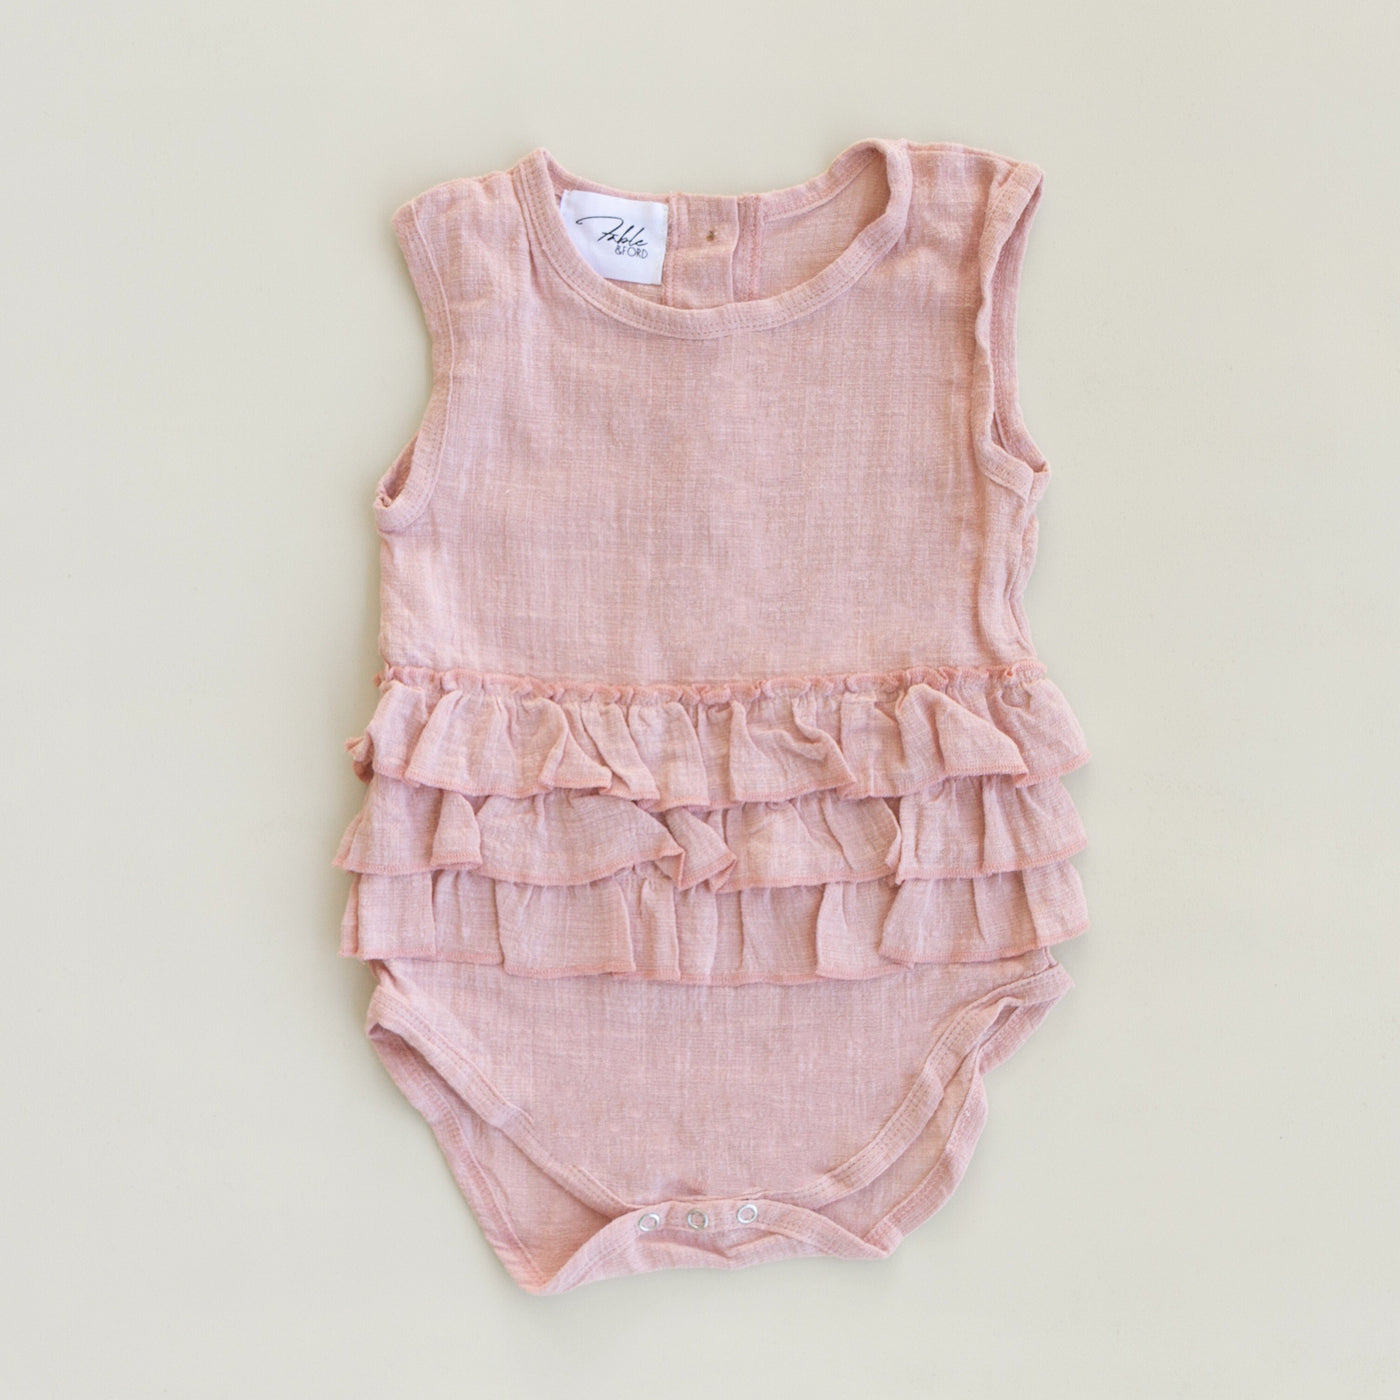 US stockist of Fable & Ford's Lola Linen Ruffle Romper in Dusk